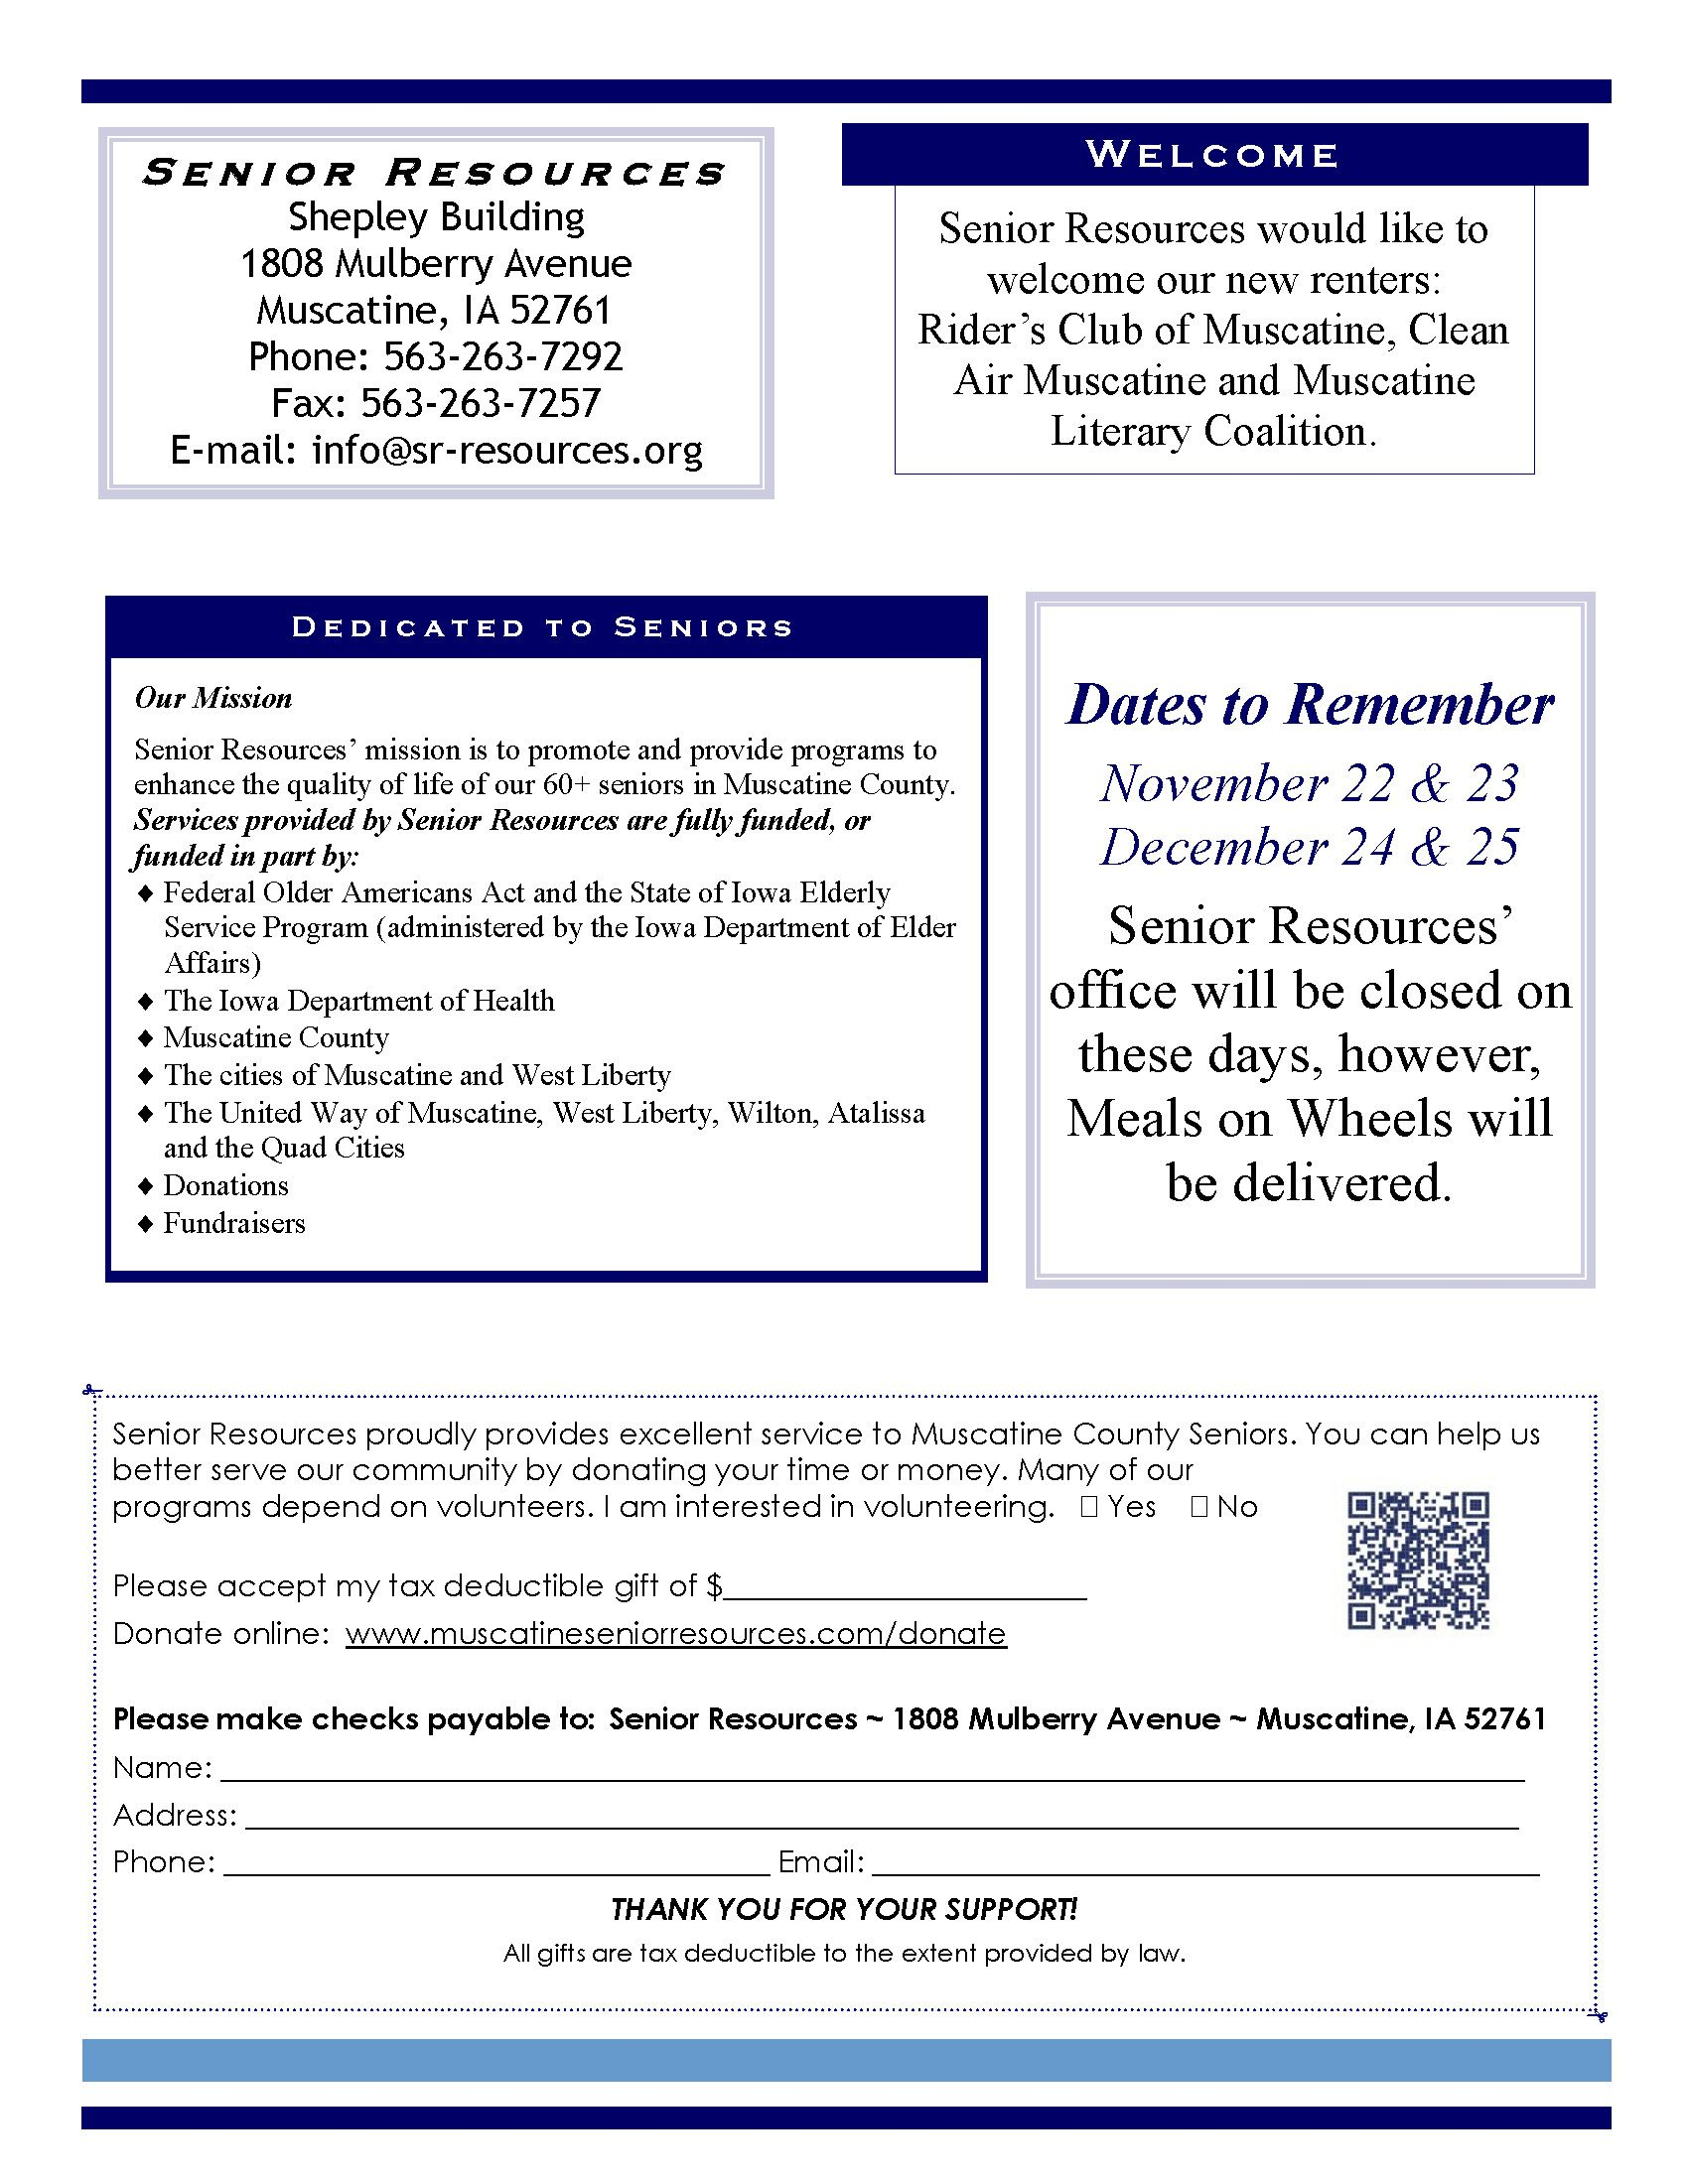 2012 3rd Quarter Newsletter If You Would Like To Be Added To Our